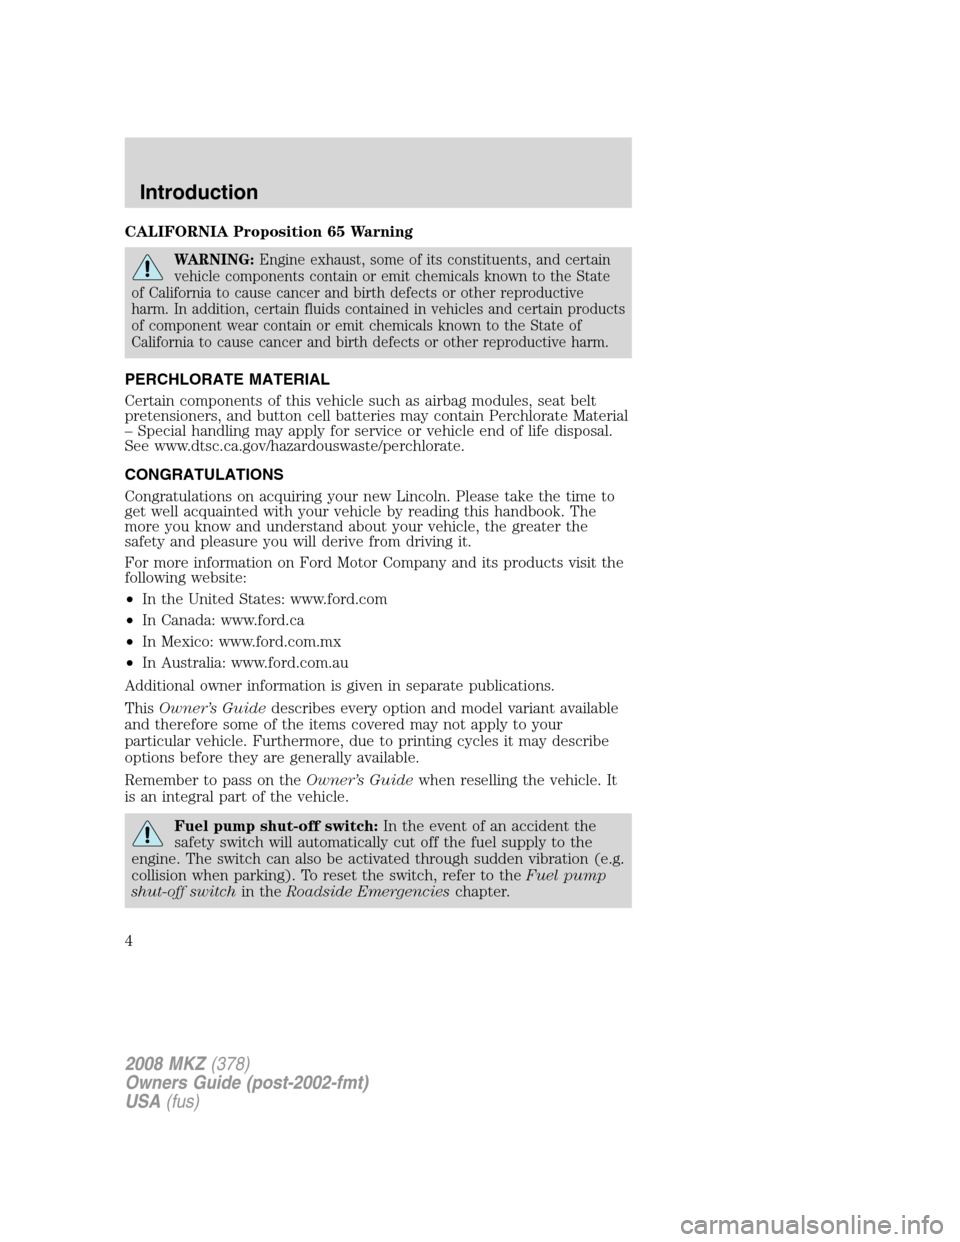 LINCOLN MKZ 2008  Owners Manual, Page 4